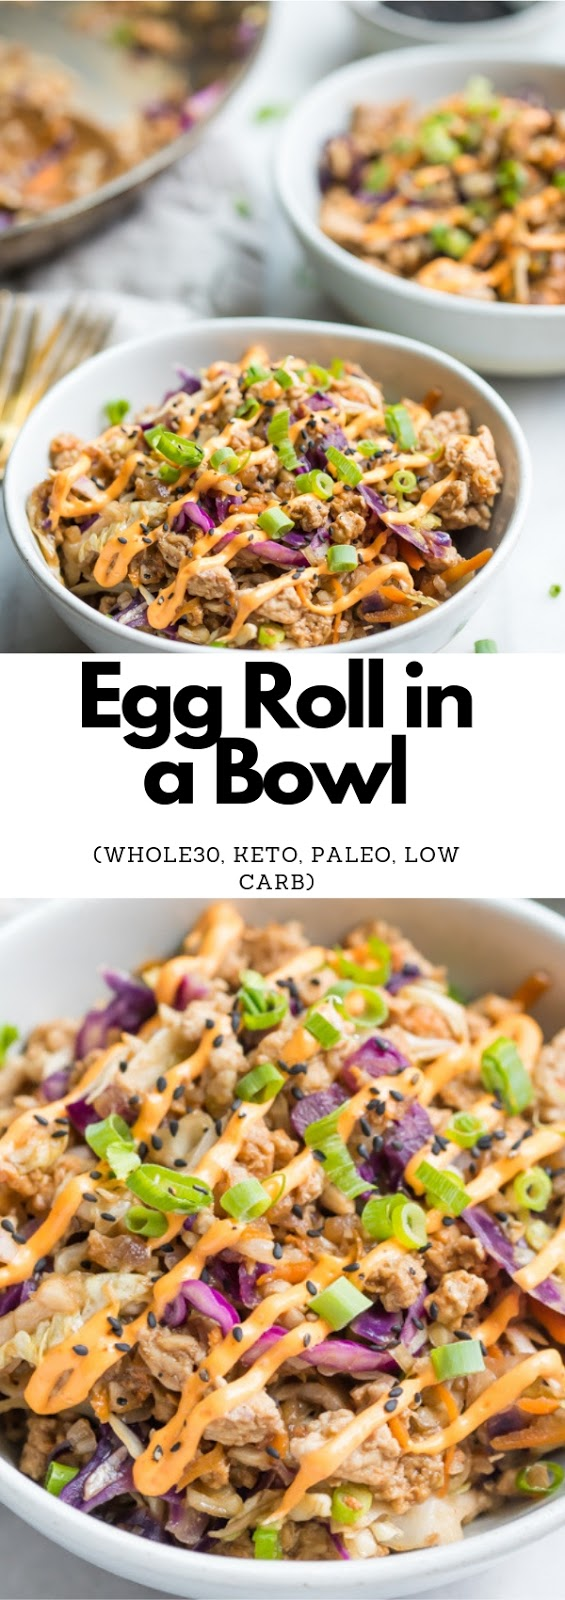 Egg Roll in a Bowl (Whole30, Keto, Paleo, Low Carb) #dinner #american #eggroll #bowl #whole30 #paleo #keto #lowcarb